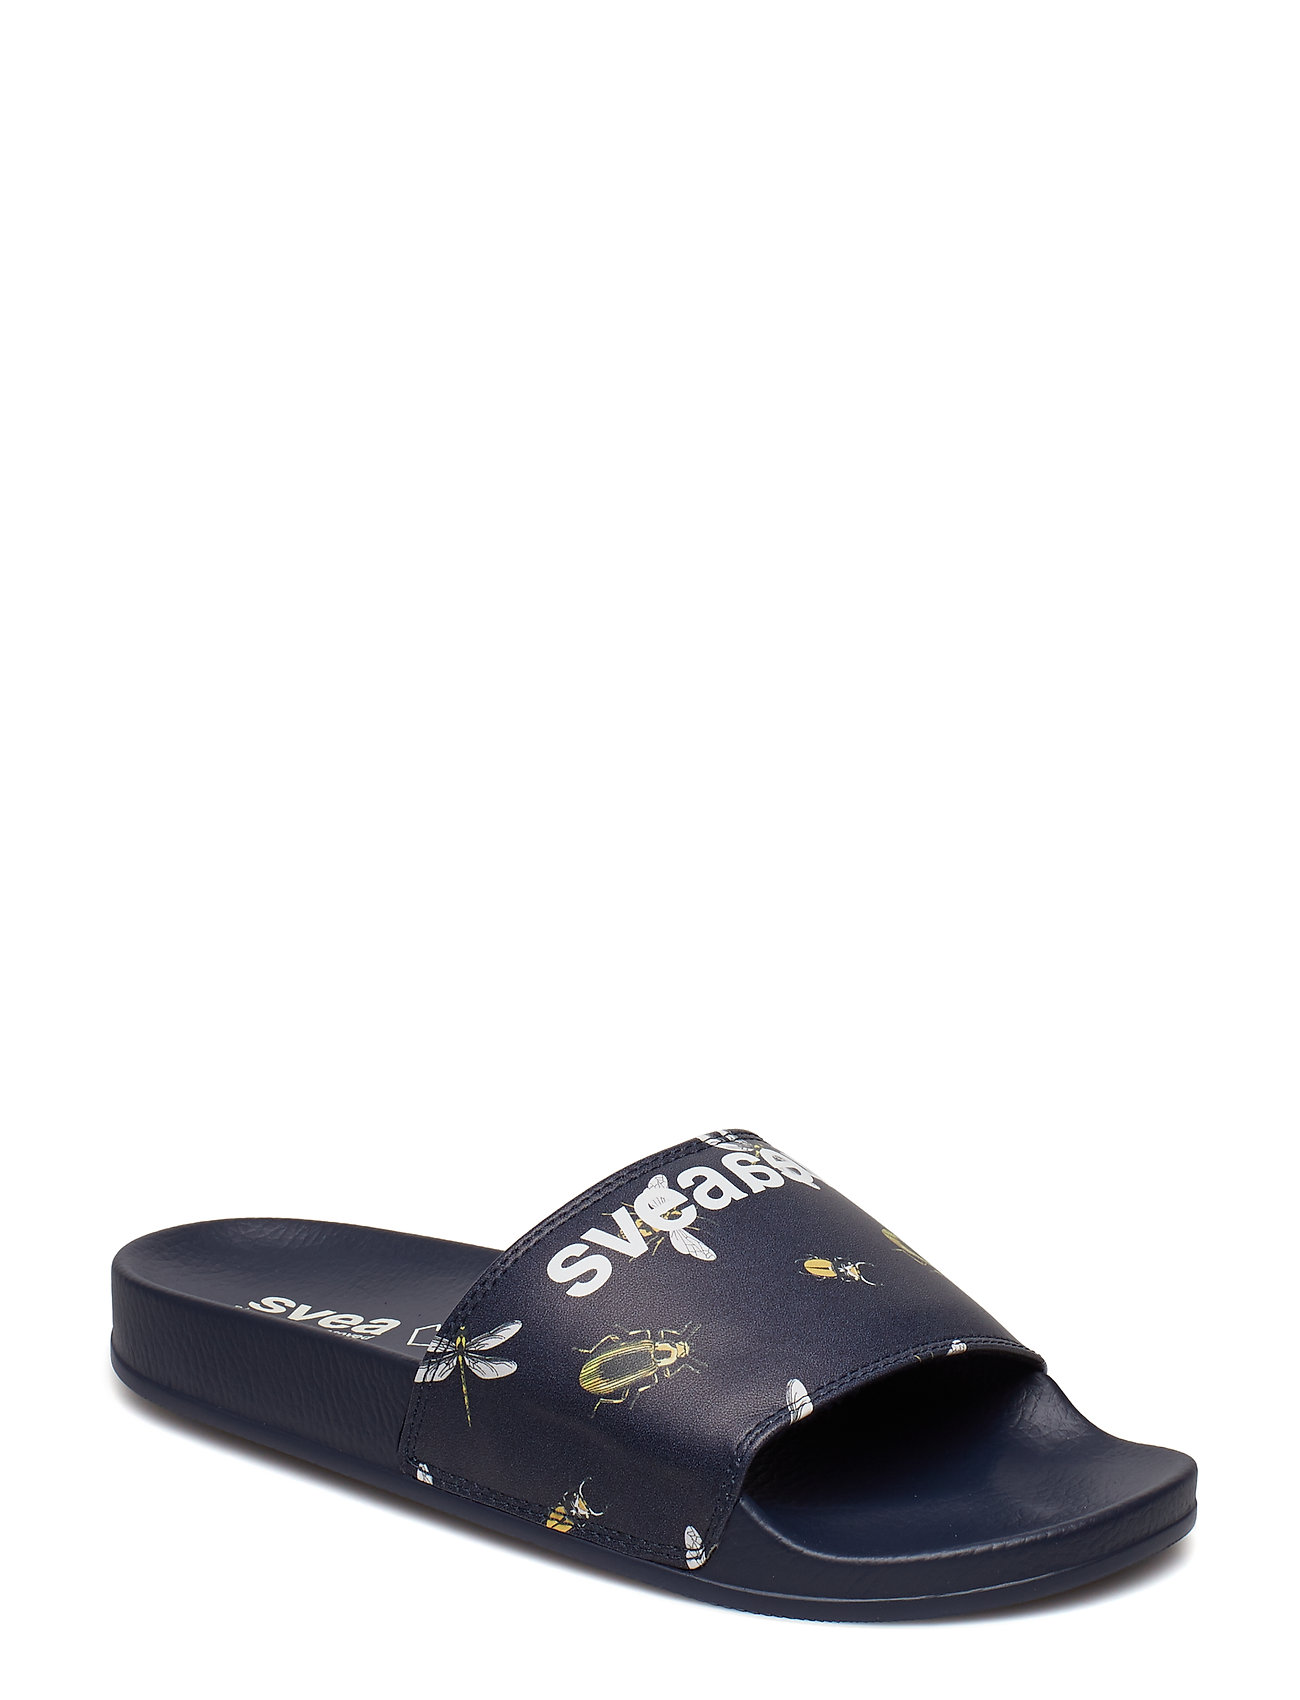 Svea Alex Insect - NAVY